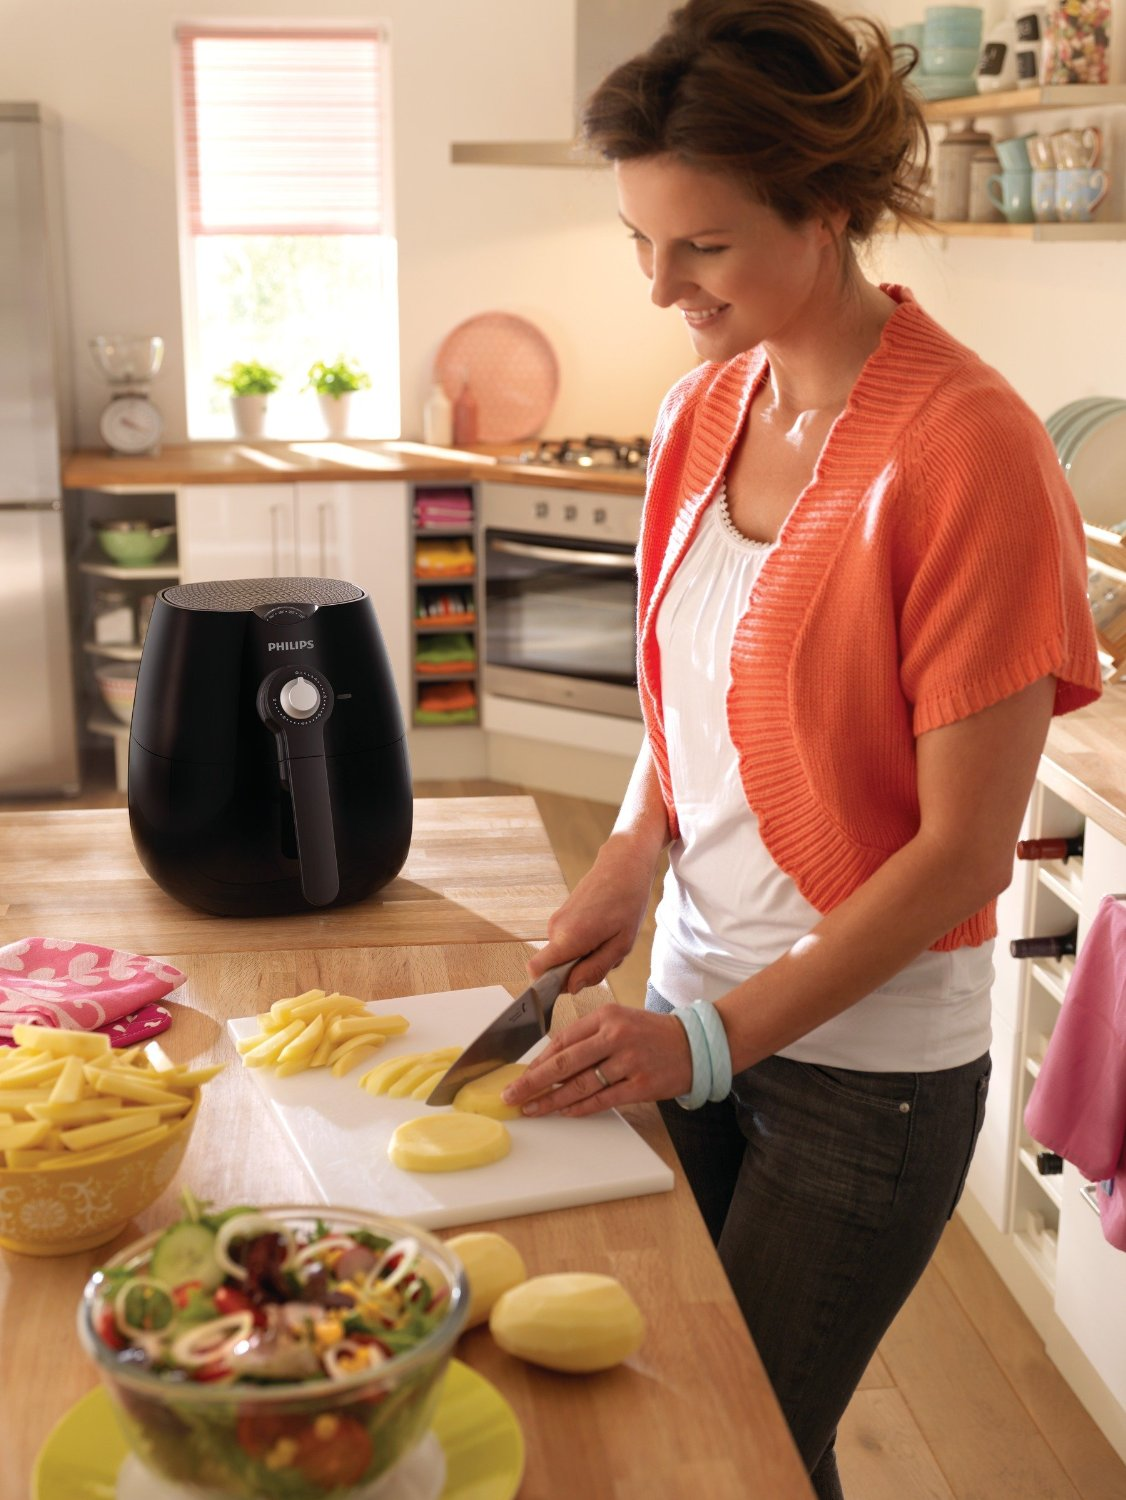 The Philips HD9220/26 is also a very good fryer and costs less than $200.